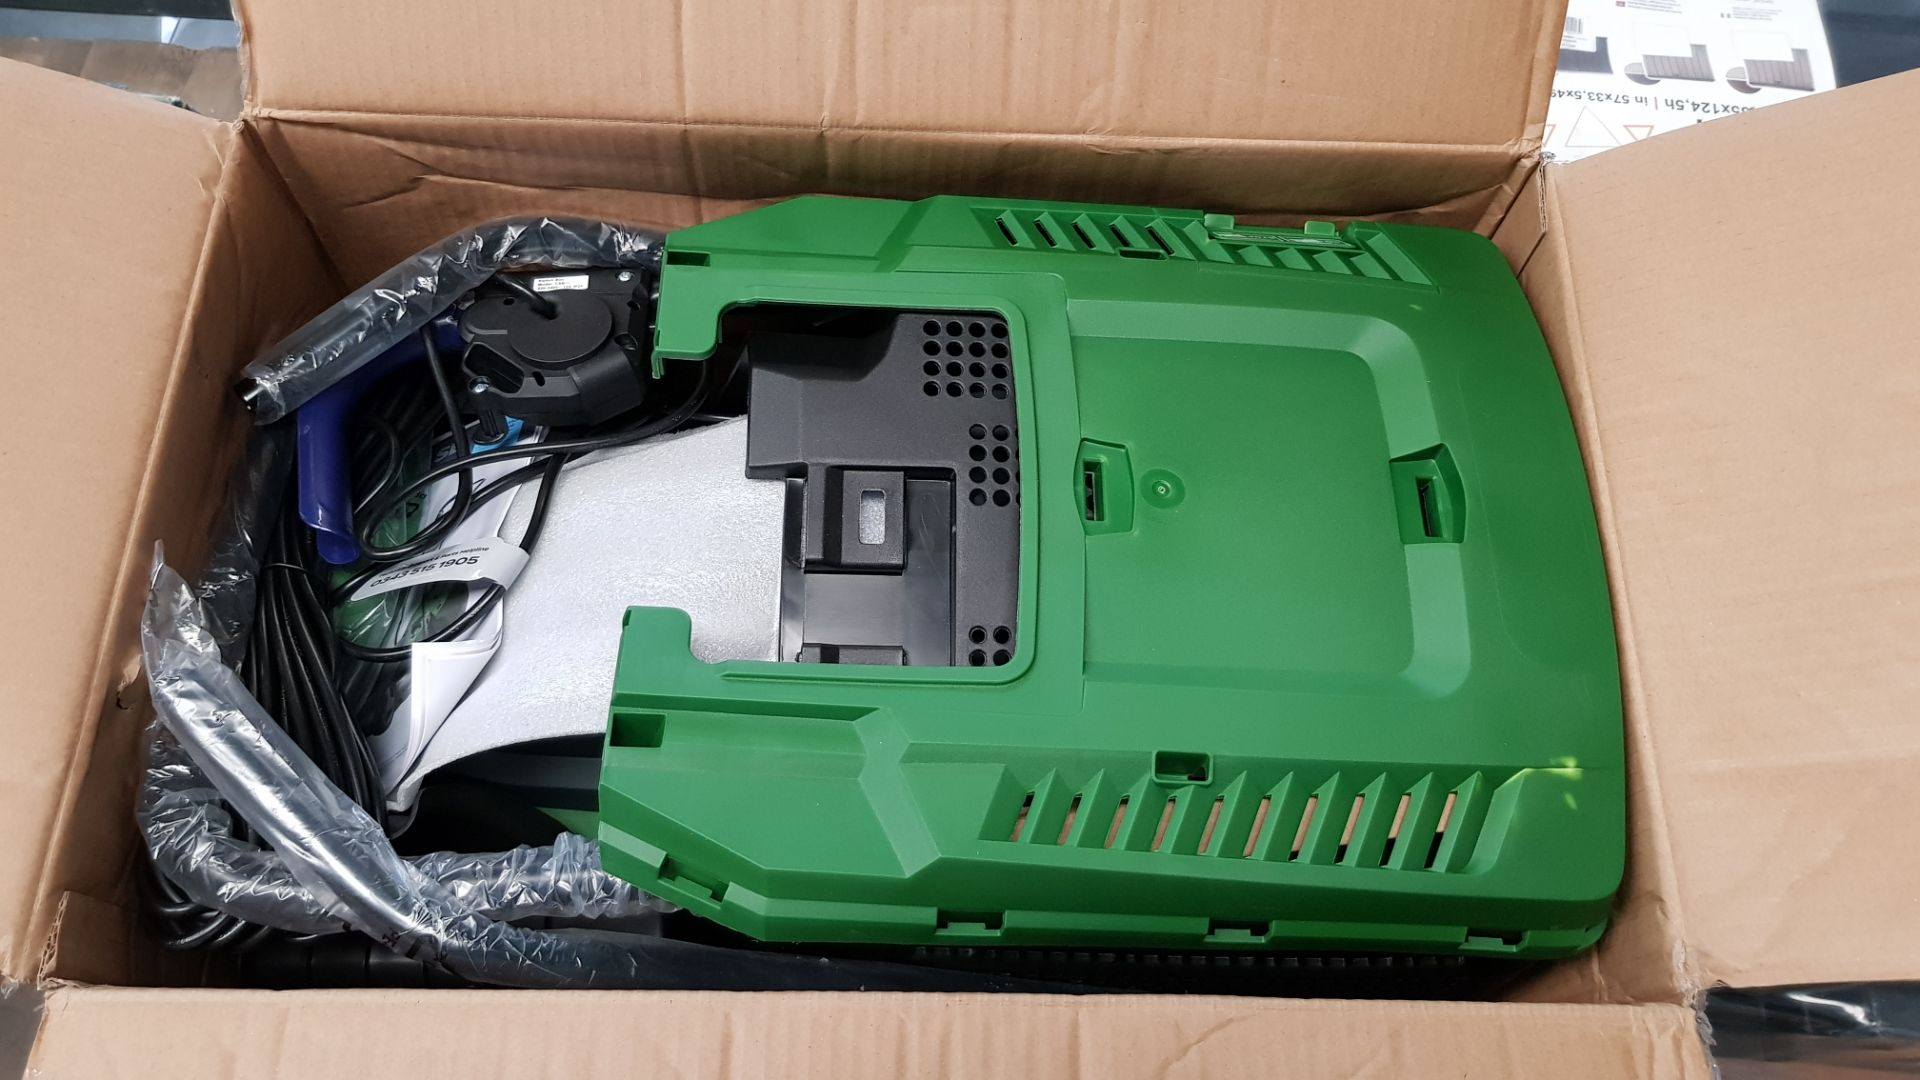 (P3) 1x Powerbase 32cm 1200W Electric Rotary Lawn Mower RRP £59. (Unit Appears Clean, Unused & As - Image 4 of 4